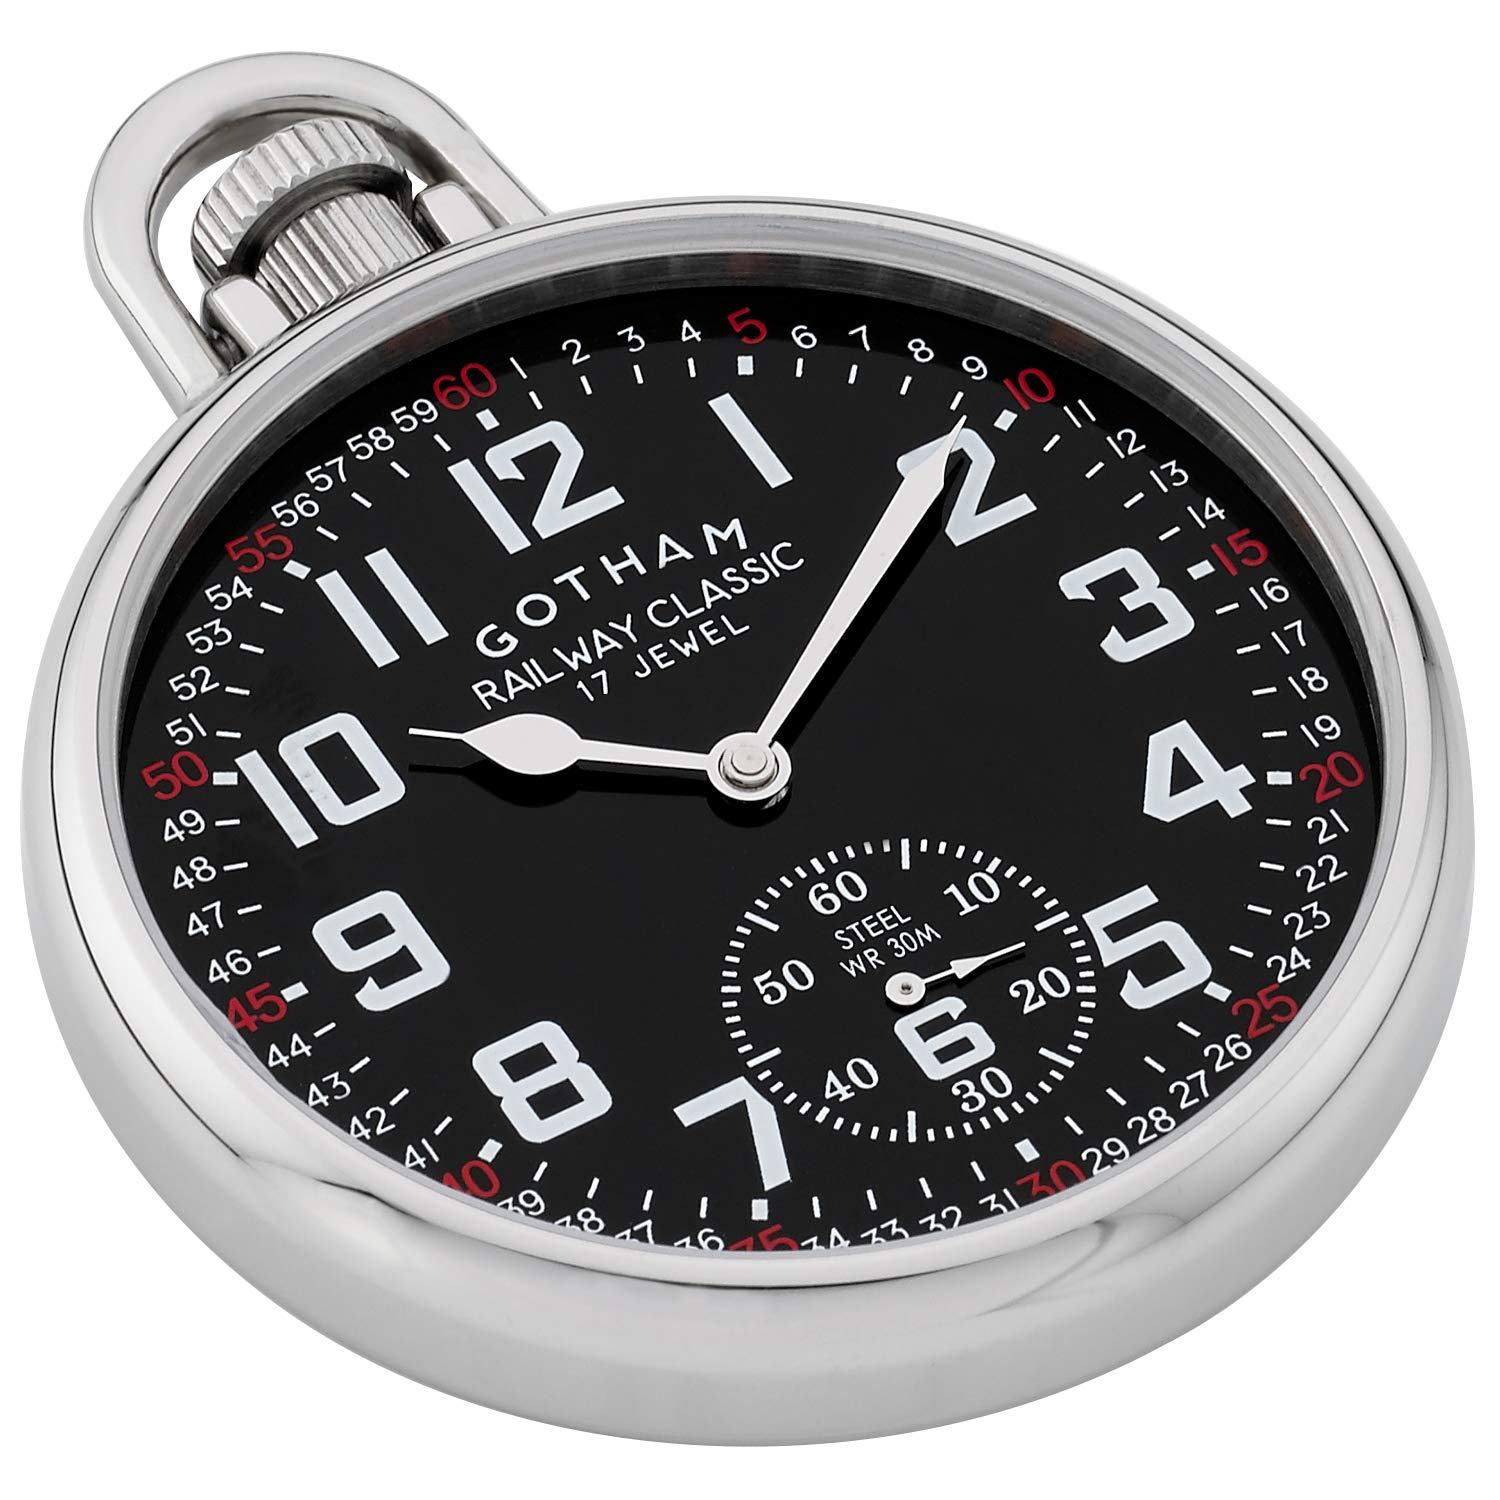 Gotham Men's Stainless Steel Mechanical Hand Wind Railroad Style Pocket Watch # GWC14108SB by Gotham (Image #2)